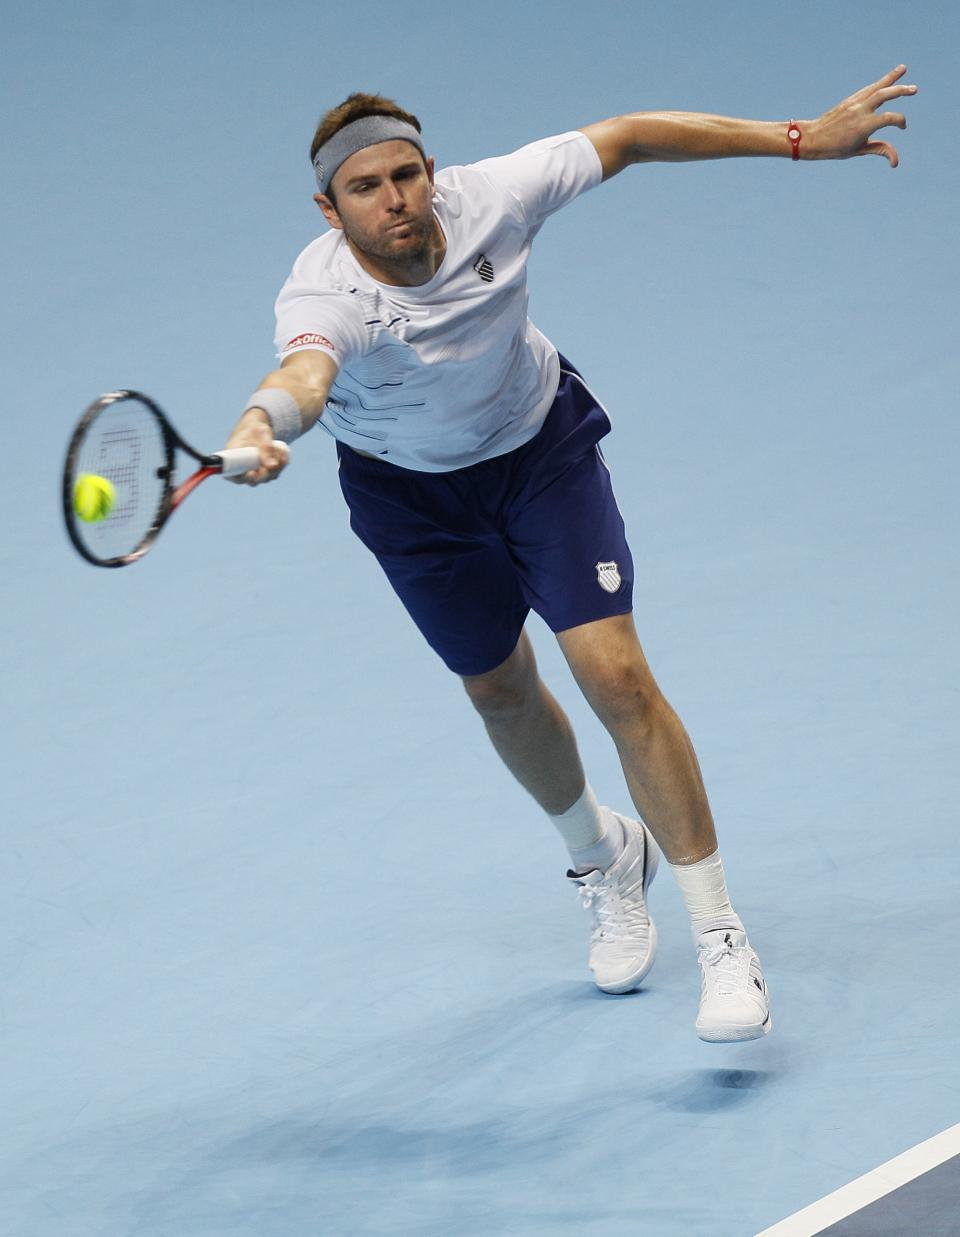 Mardy Fish of the U.S. plays a return to Jo-Wilfred Tsonga of France during their round robin singles tennis match against at the ATP World Tour Finals at O2 Arena in London, Tuesday, Nov. 22, 2011.  (AP Photo/Kirsty Wigglesworth)